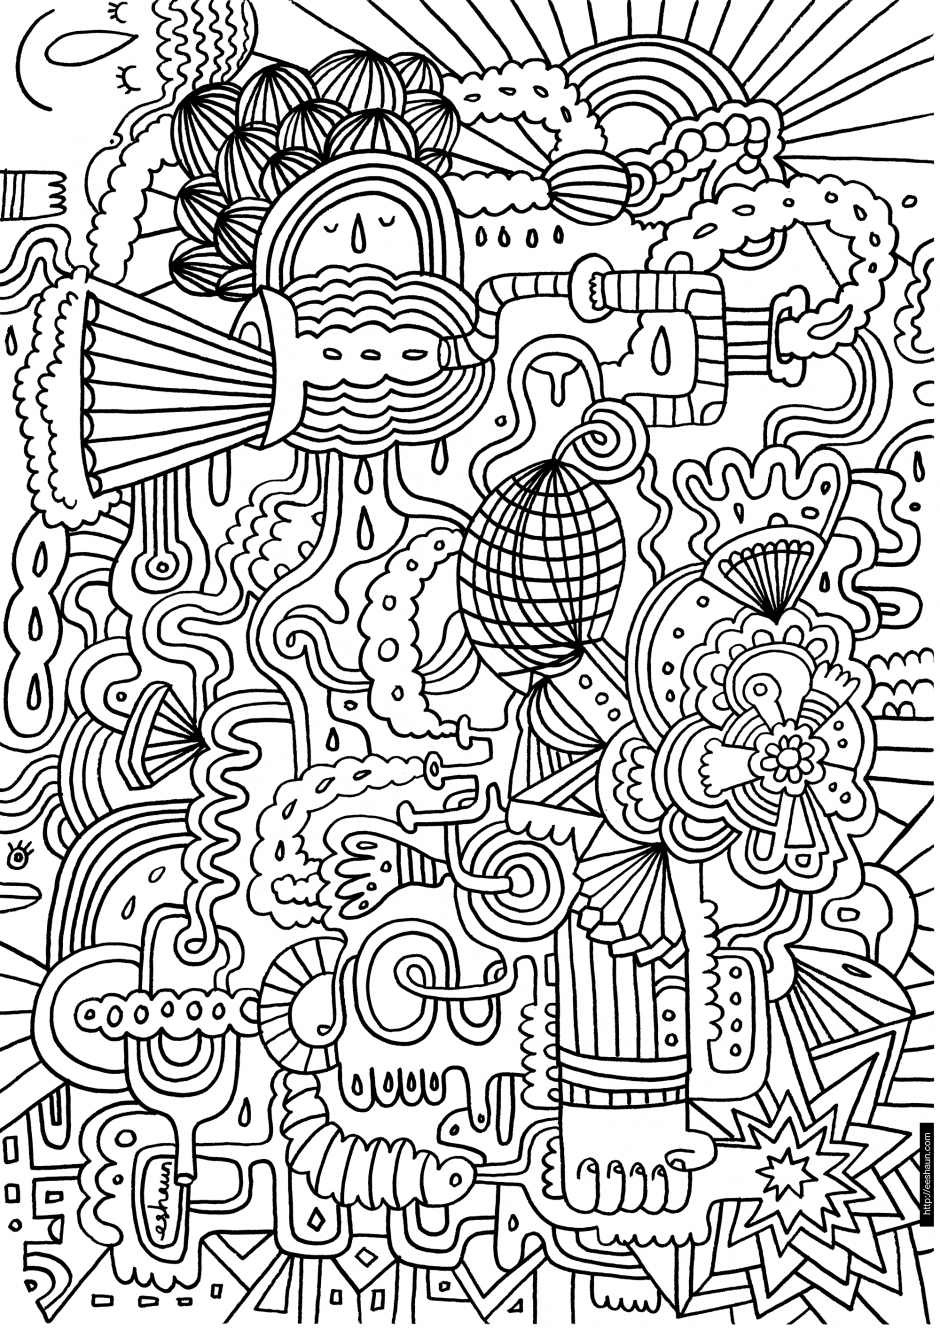 coloring pages difficult but fun coloring pages free and printable - Fun Coloring Sheets